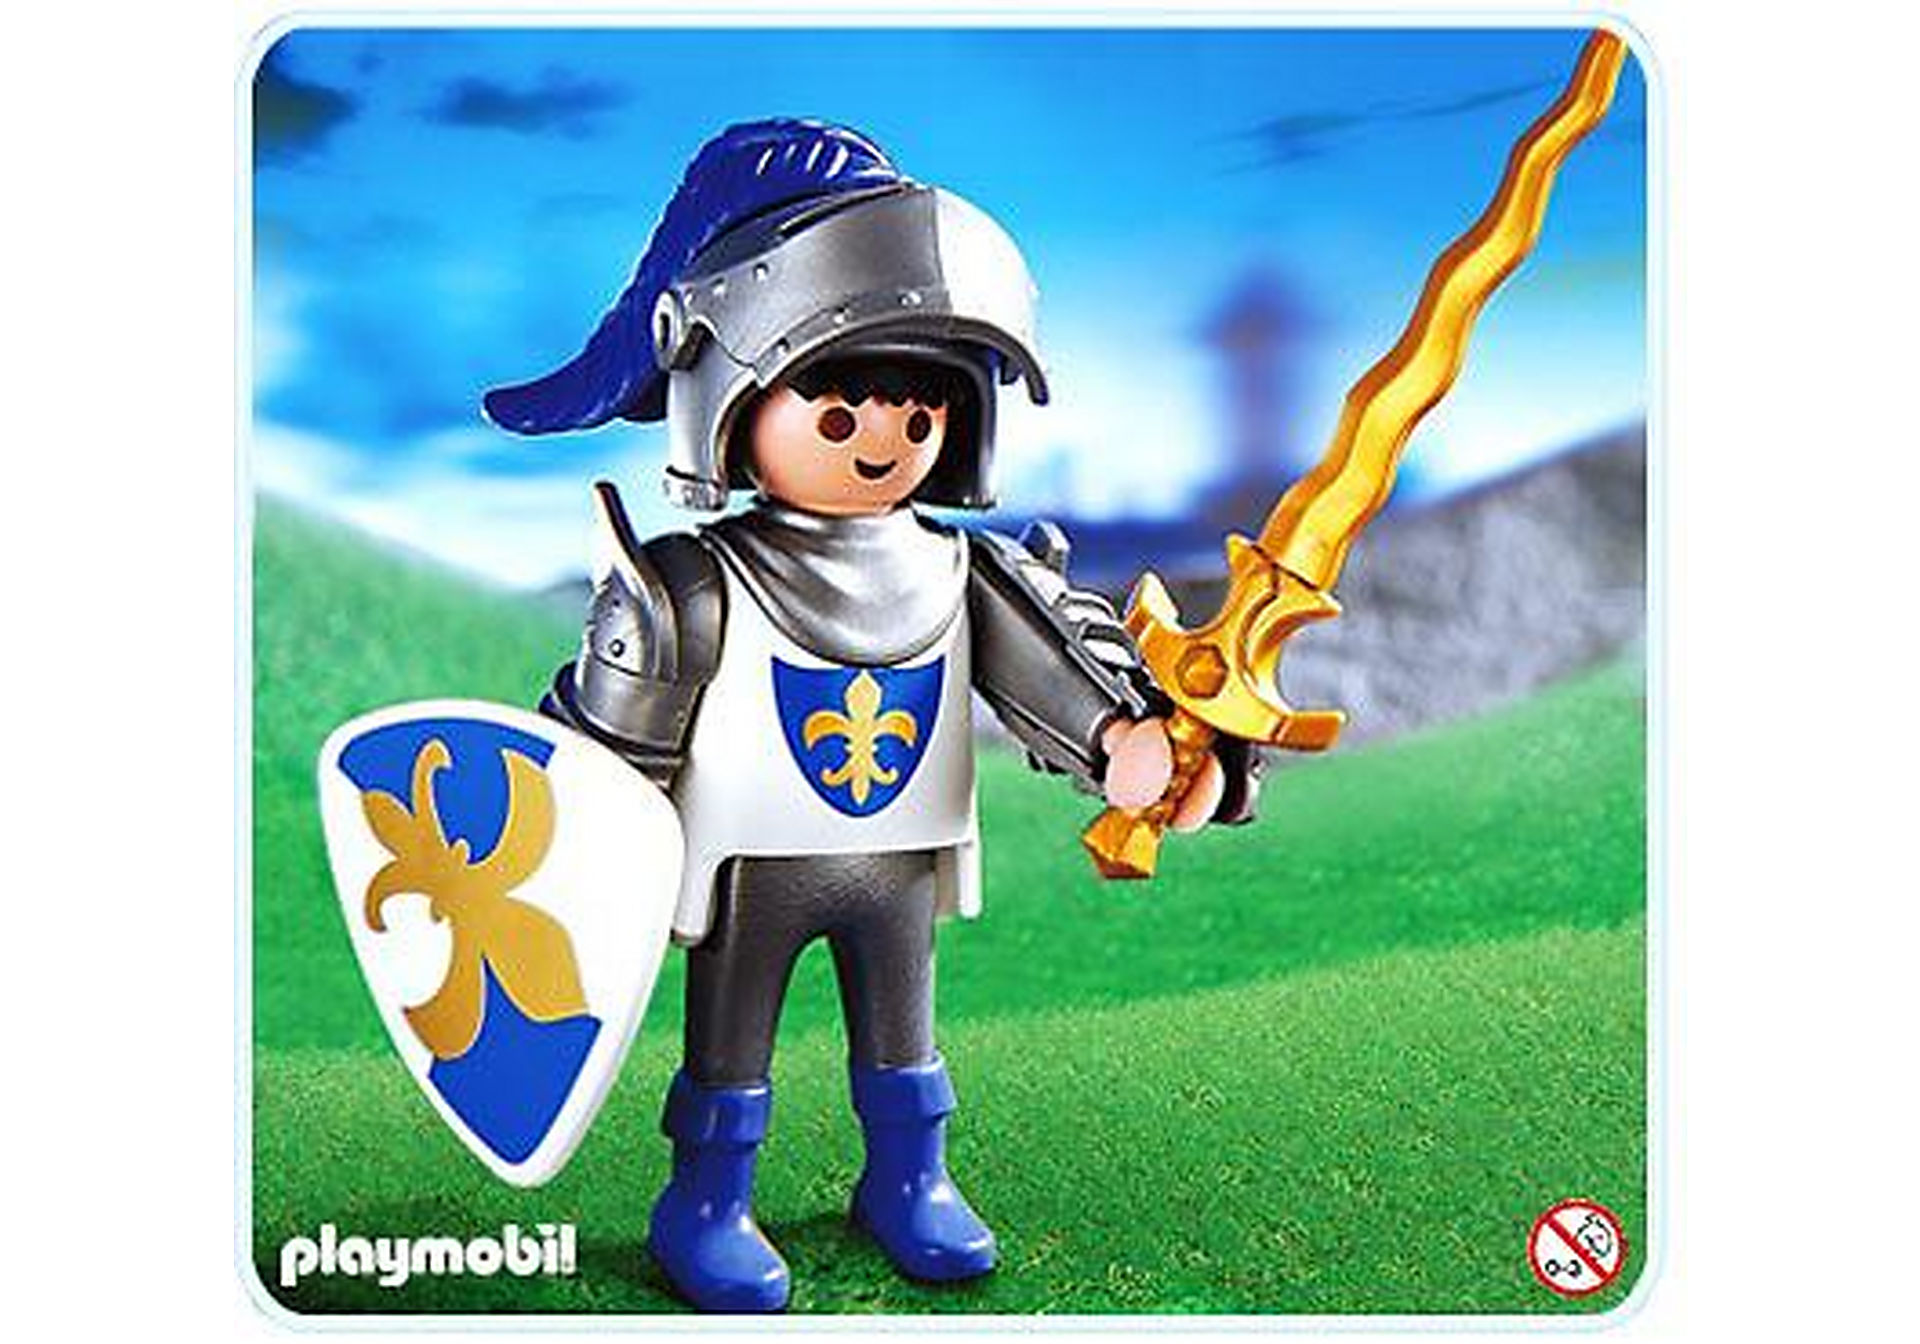 http://media.playmobil.com/i/playmobil/4616-A_product_detail/Ritter Hype